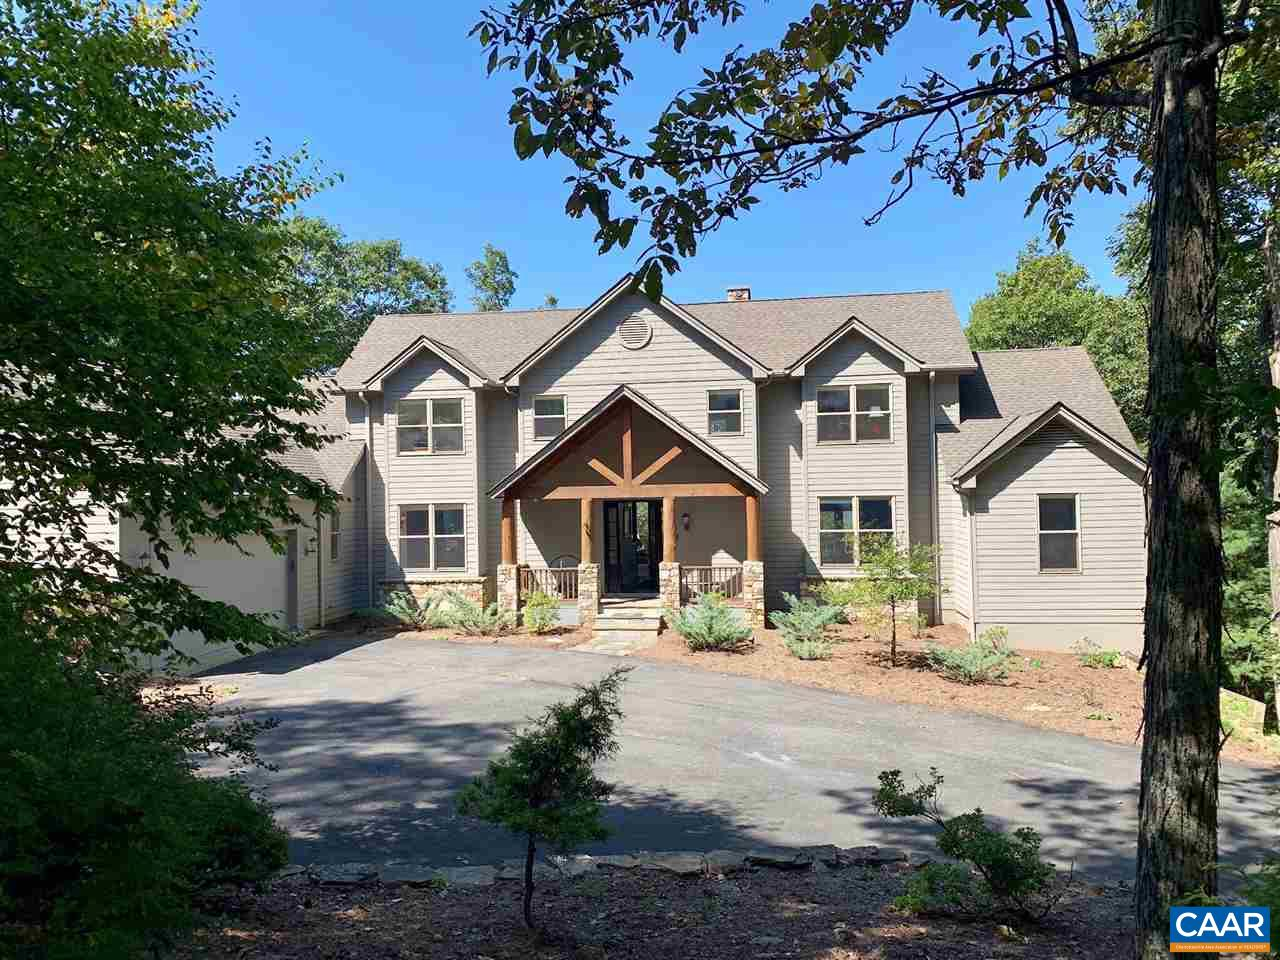 21 INDIAN POINT TRL, WINTERGREEN, VA 22967